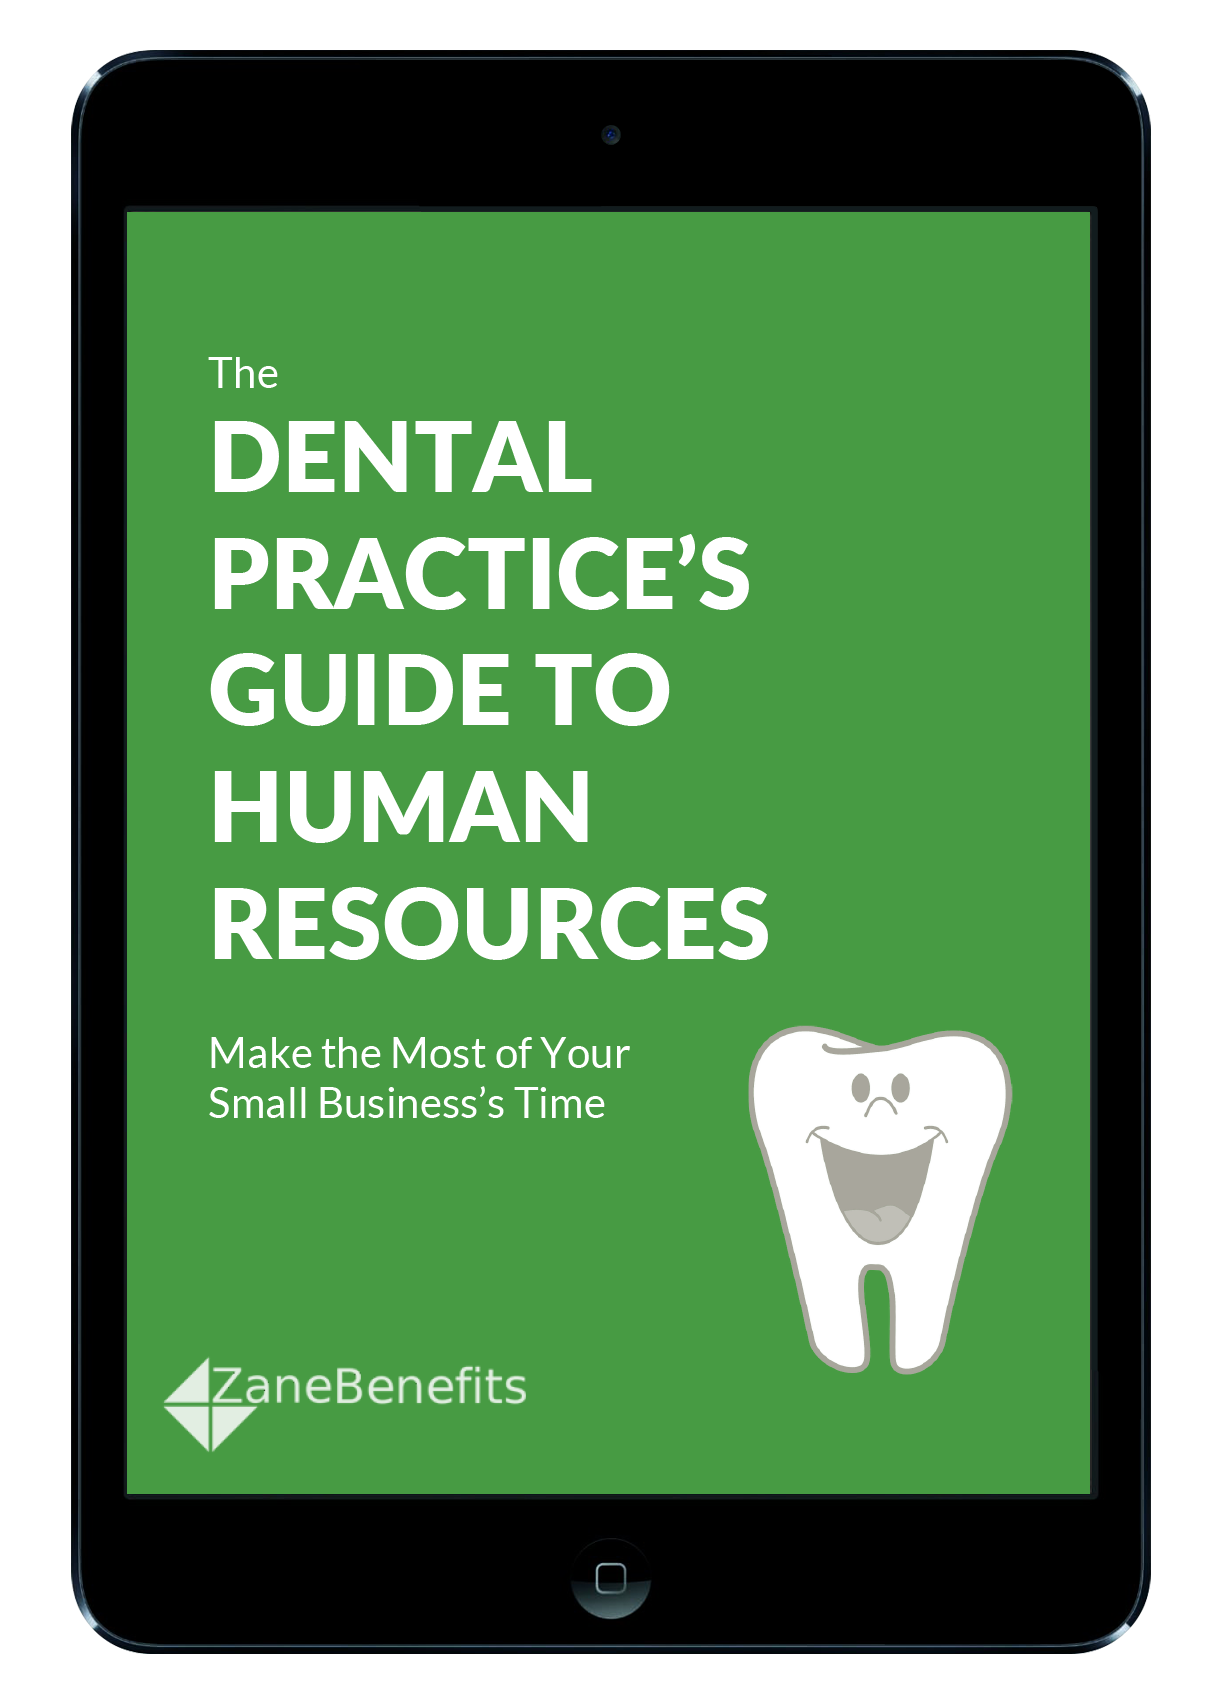 The Dental Practice's Guide to Human Resources